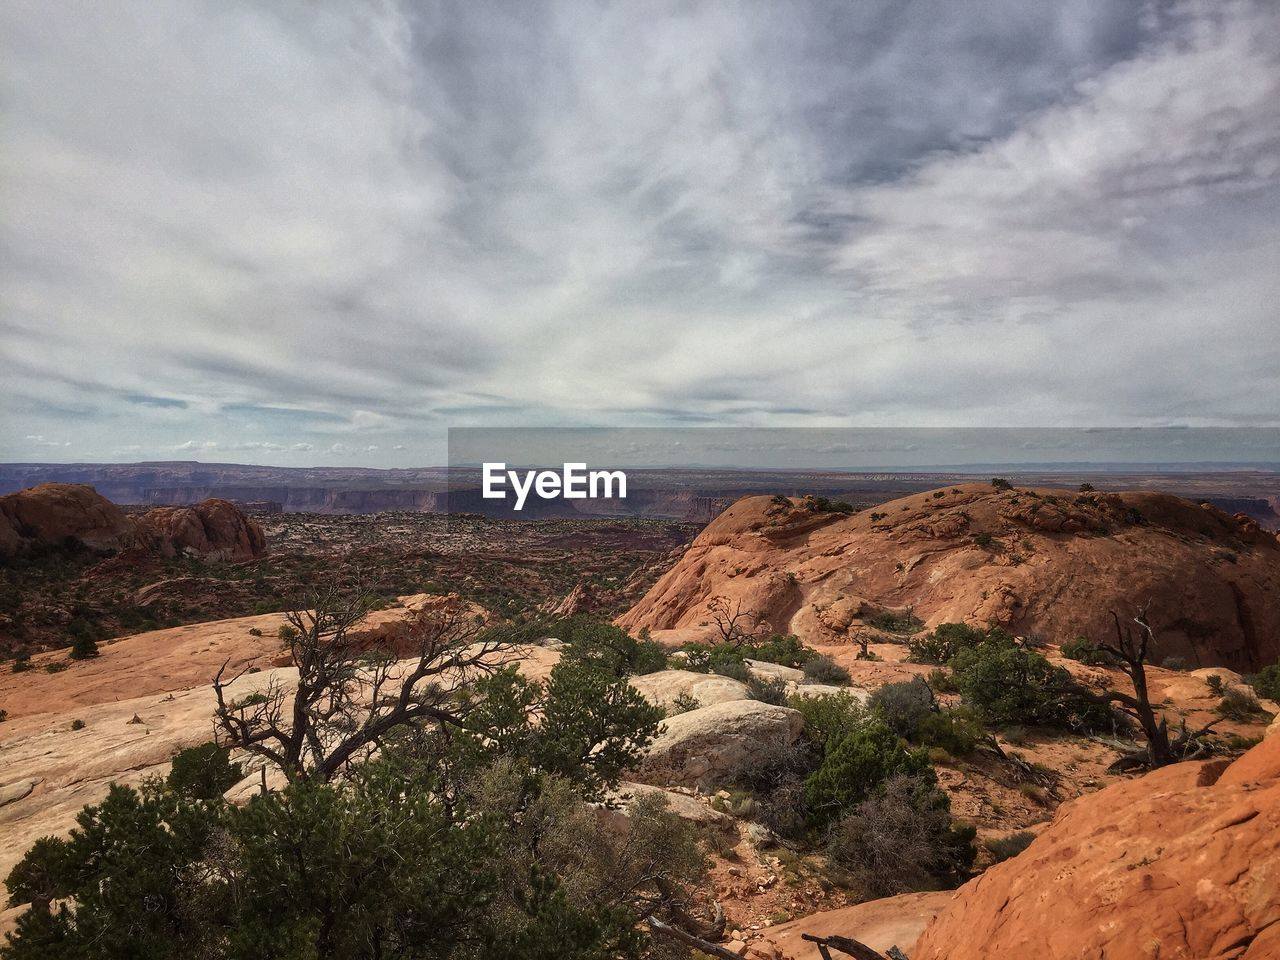 tranquil scene, scenics, tranquility, nature, beauty in nature, landscape, geology, non-urban scene, sky, day, outdoors, no people, rock - object, mountain, cloud - sky, travel destinations, physical geography, arid climate, desert, mountain range, tree